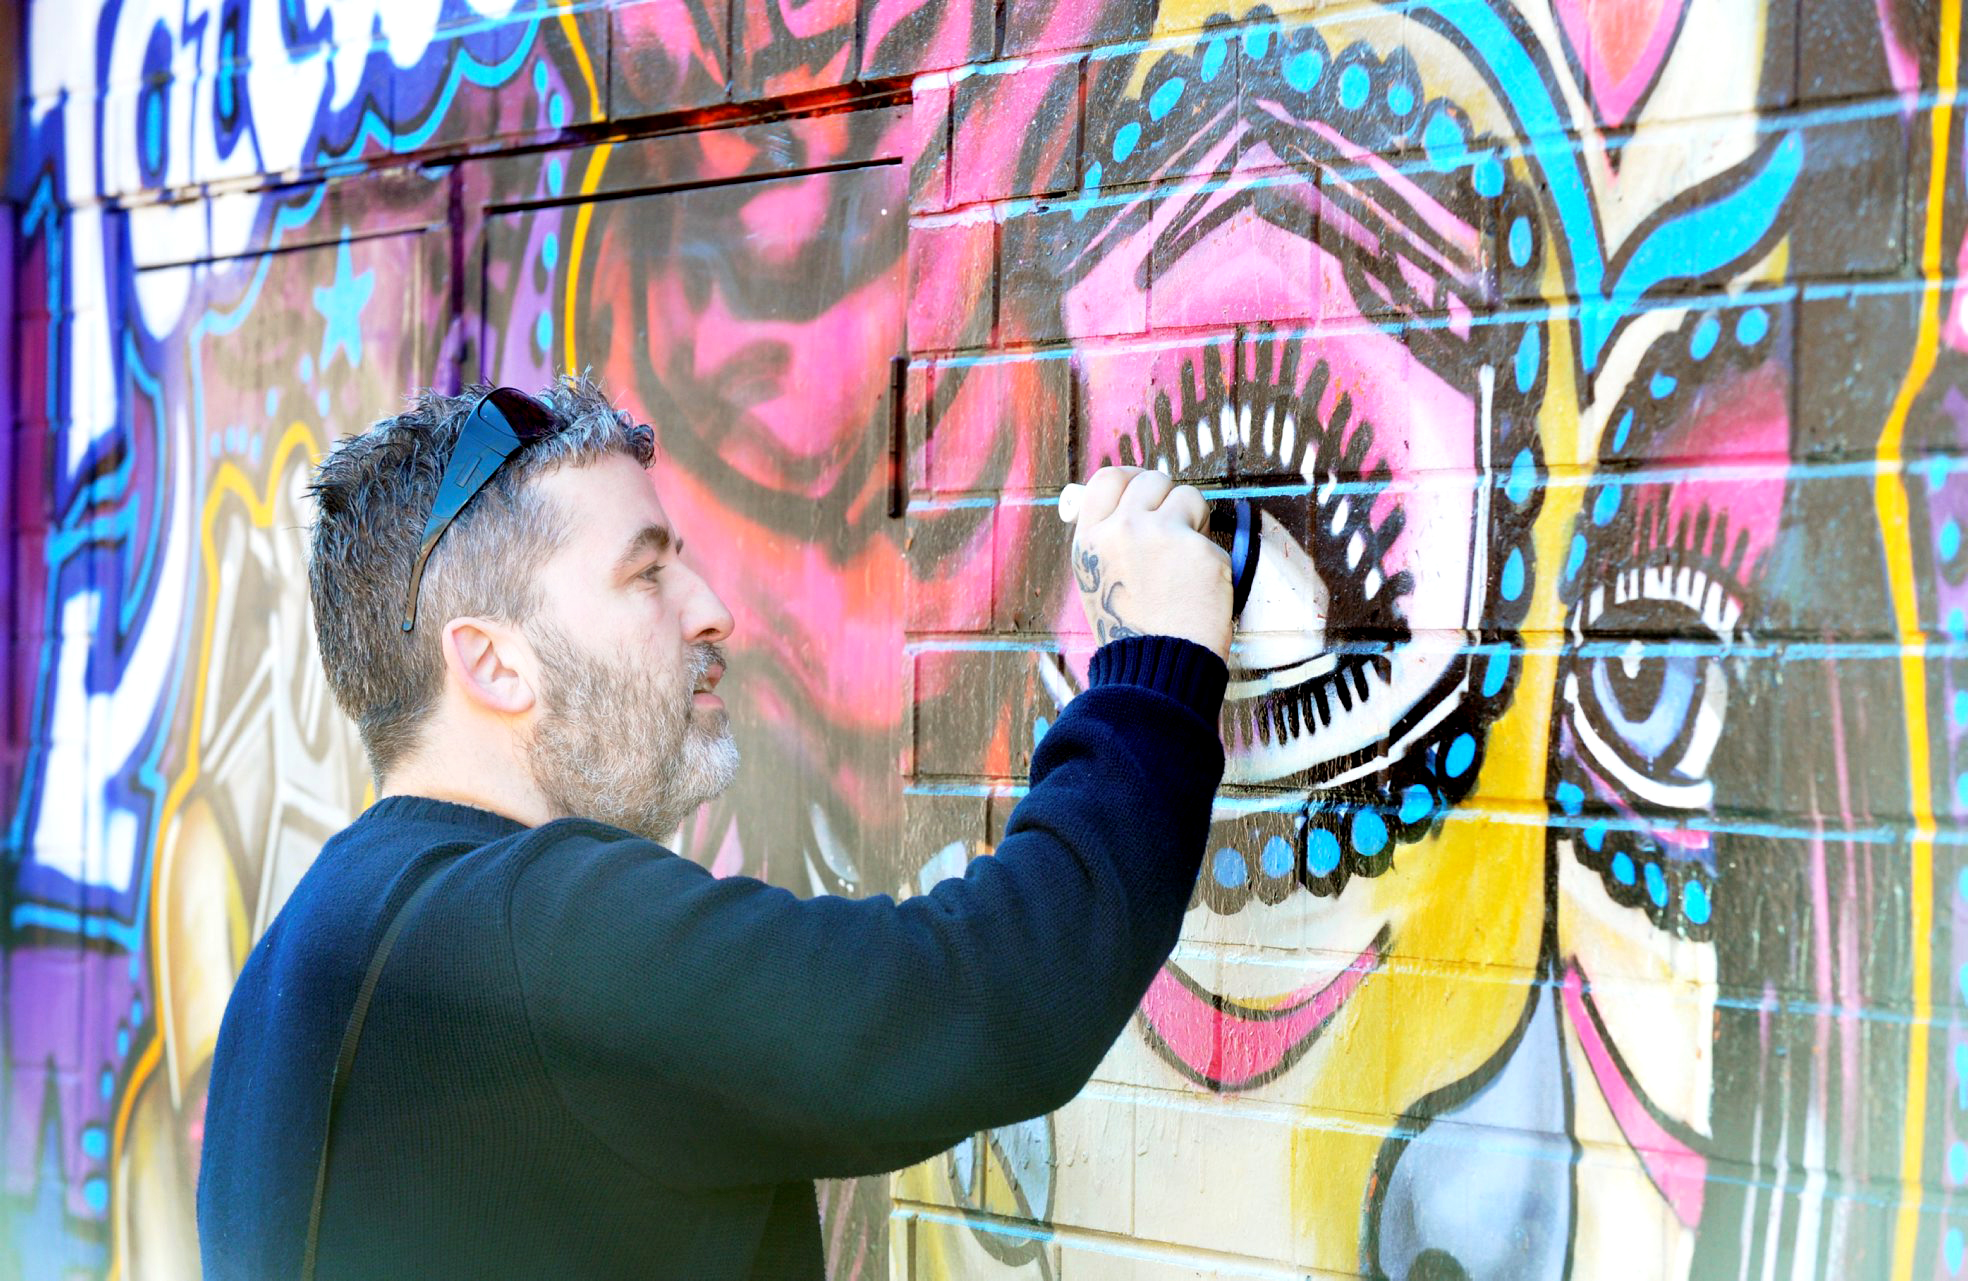 Graffiti artist repairs his own work - after it was targeted by vandals